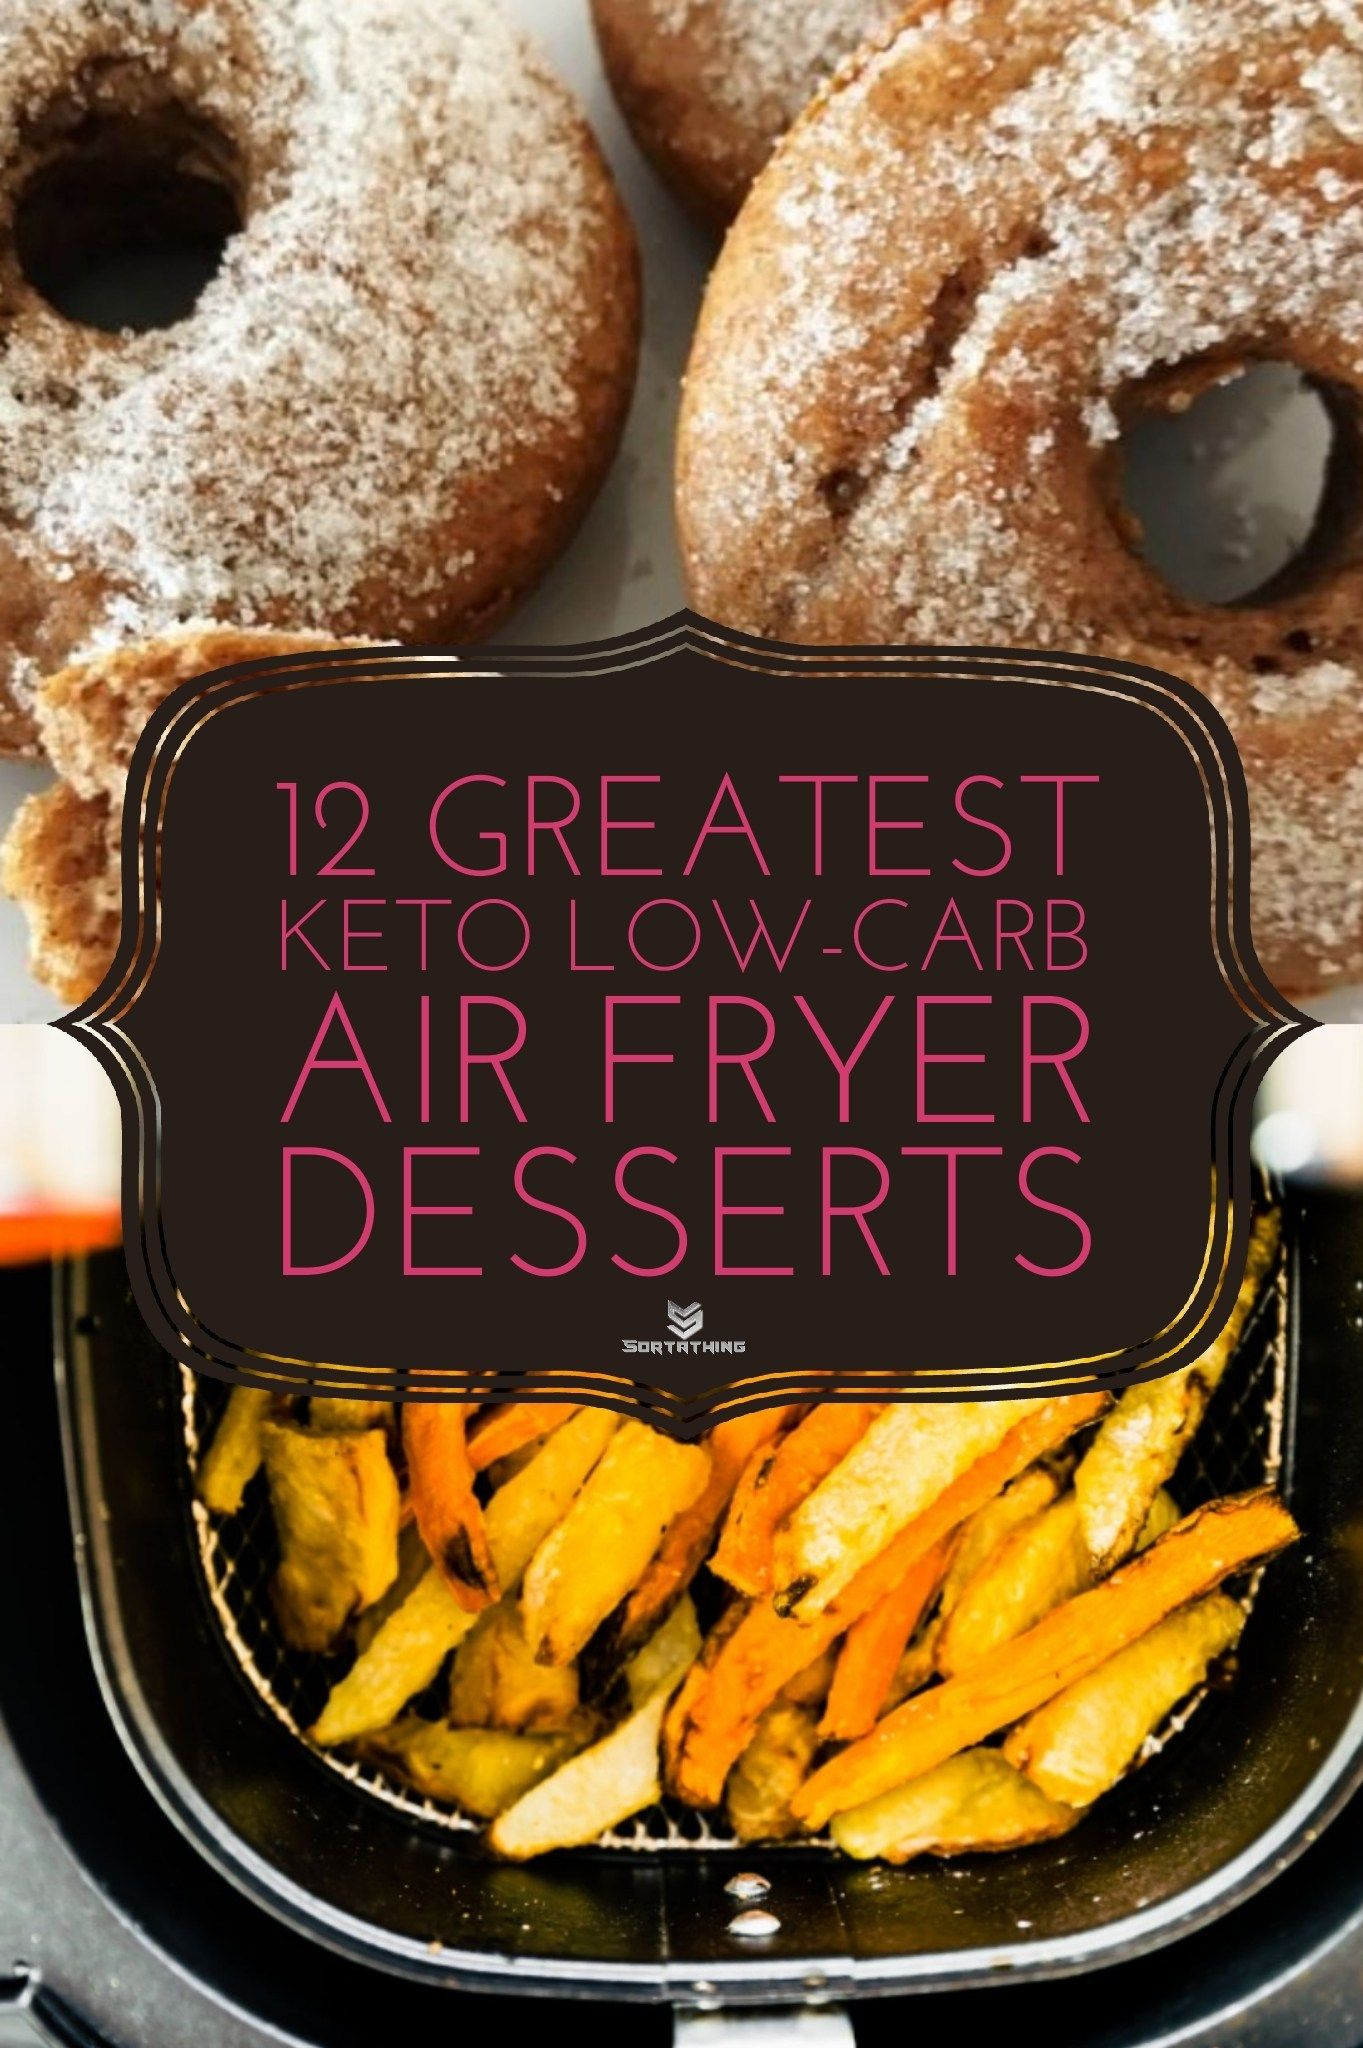 Air Fryer Keto Donut Recipes  12 Greatest Keto Low Carb Air Fryer Dessert Recipes in